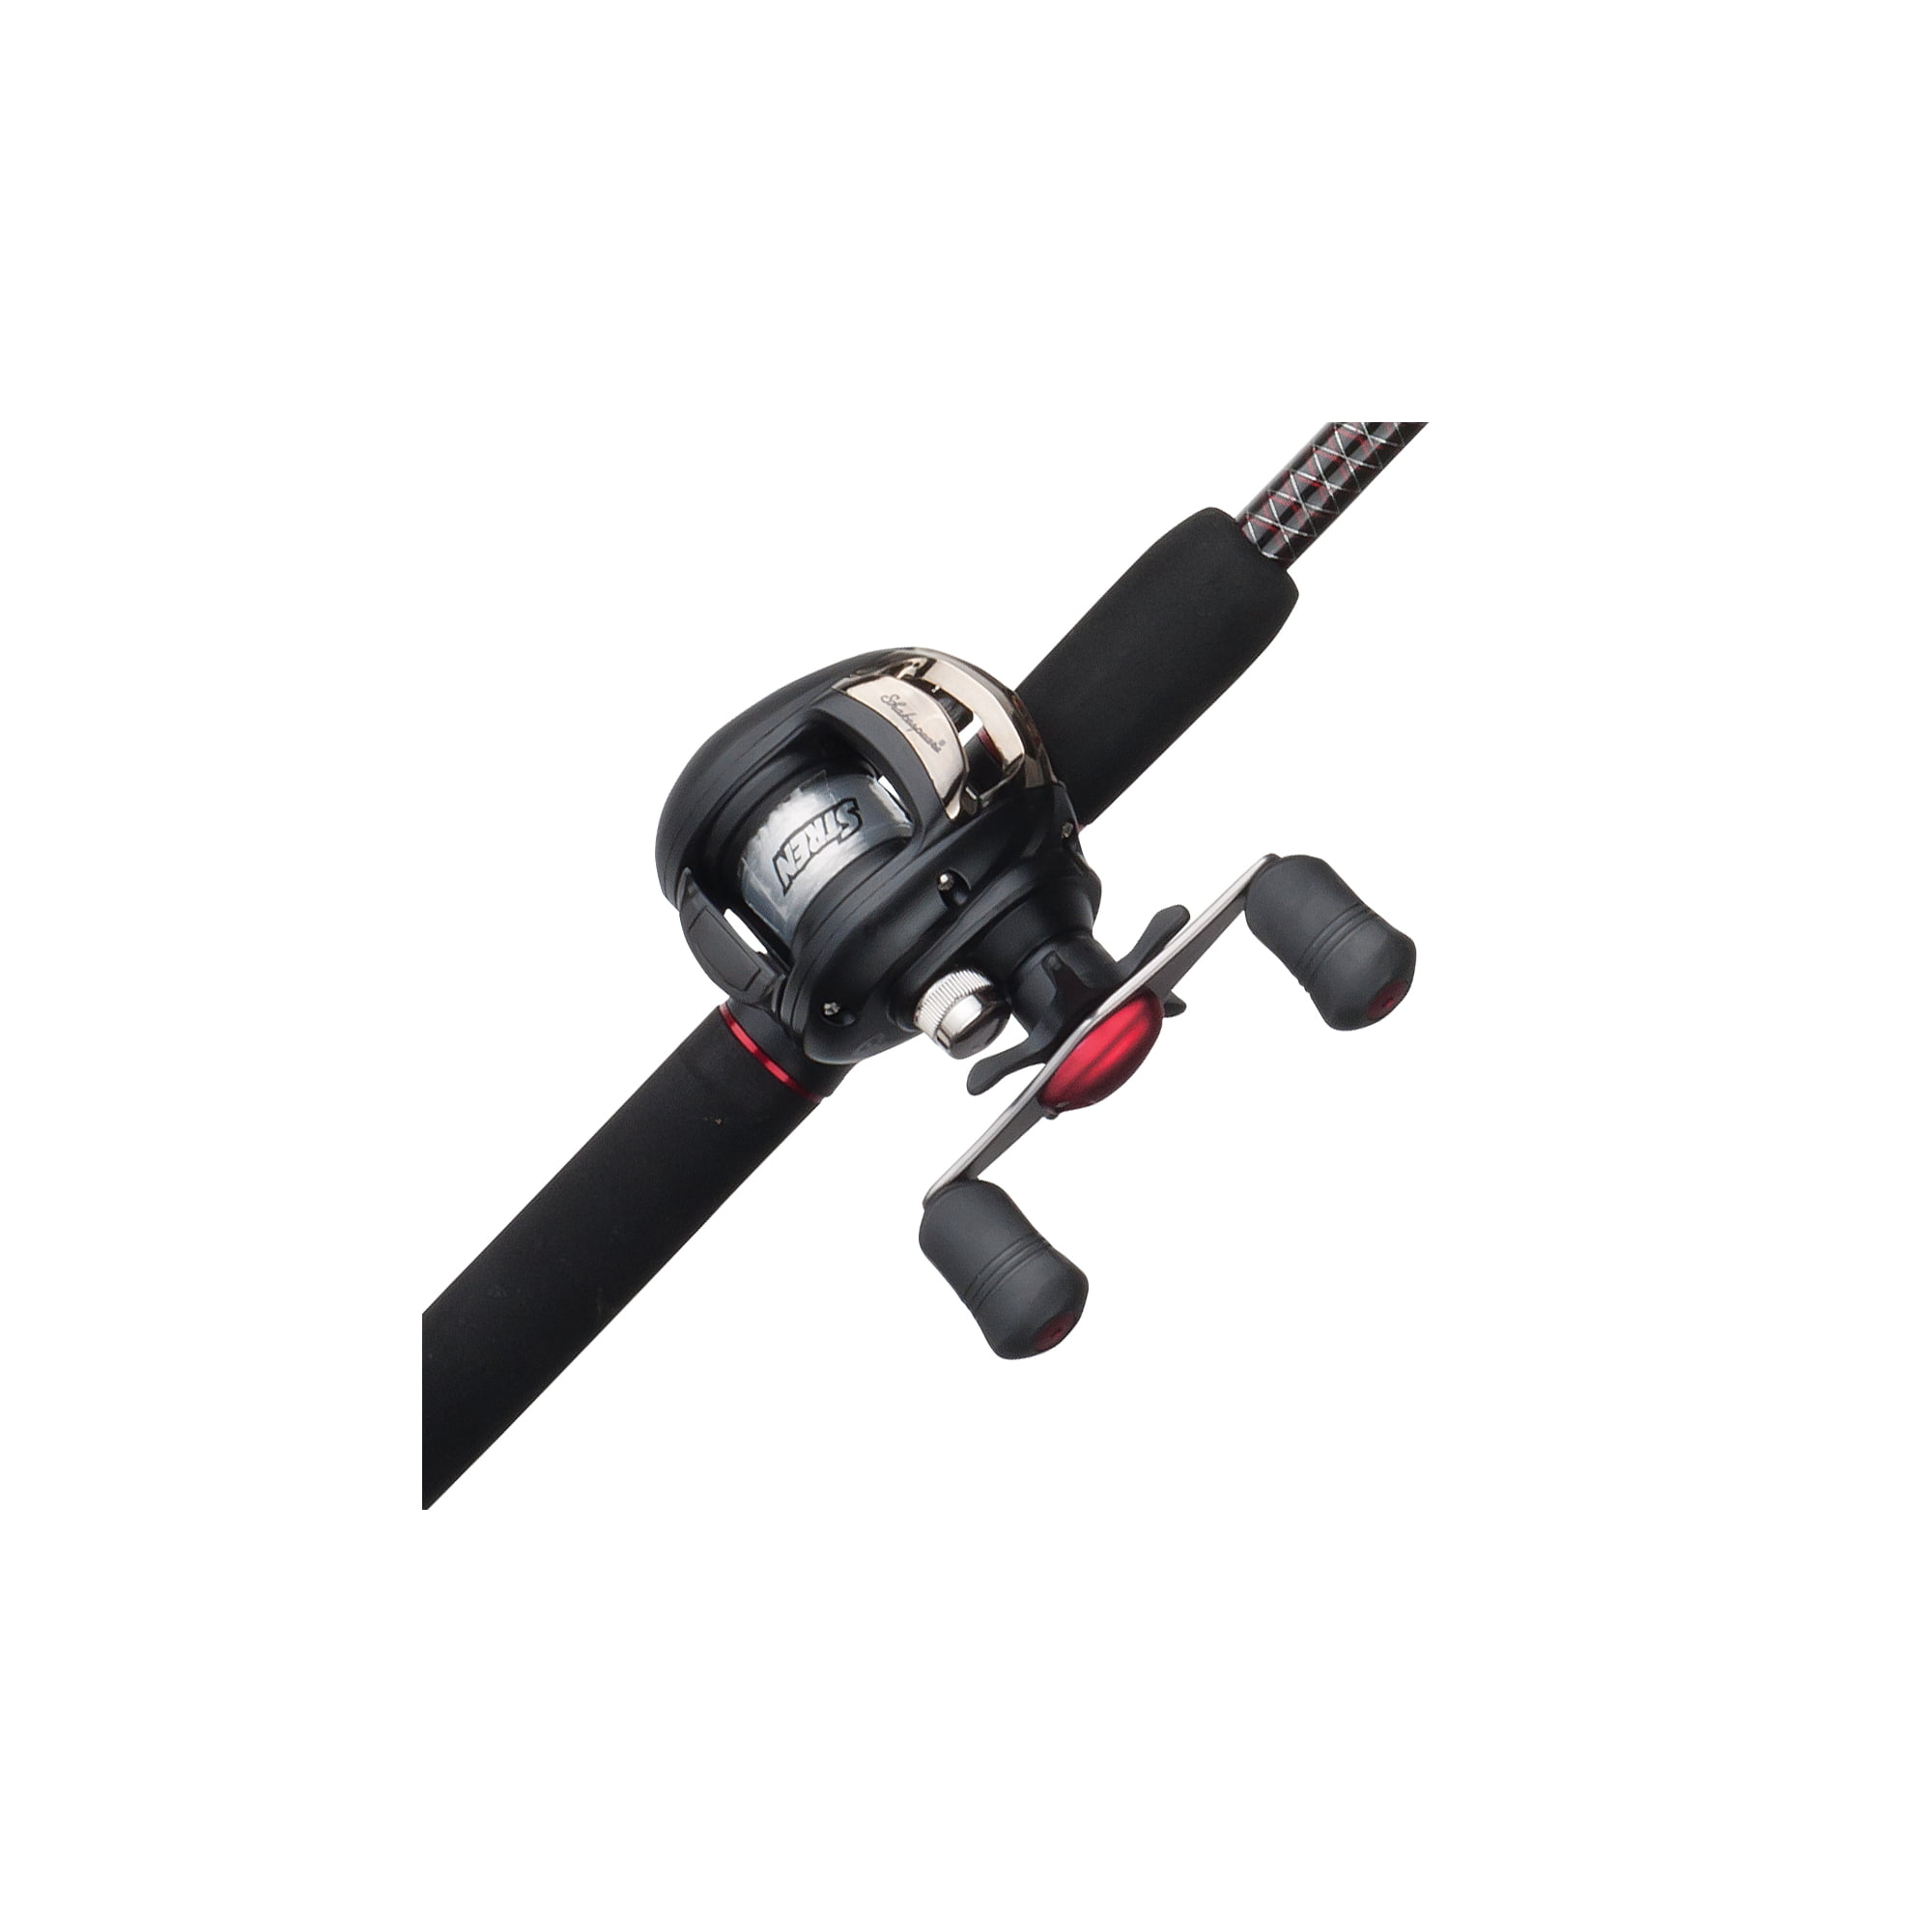 Shakespeare Ugly Stik GX2 Low Profile Baitcast Reel and Fishing Rod Combo by Shakespeare